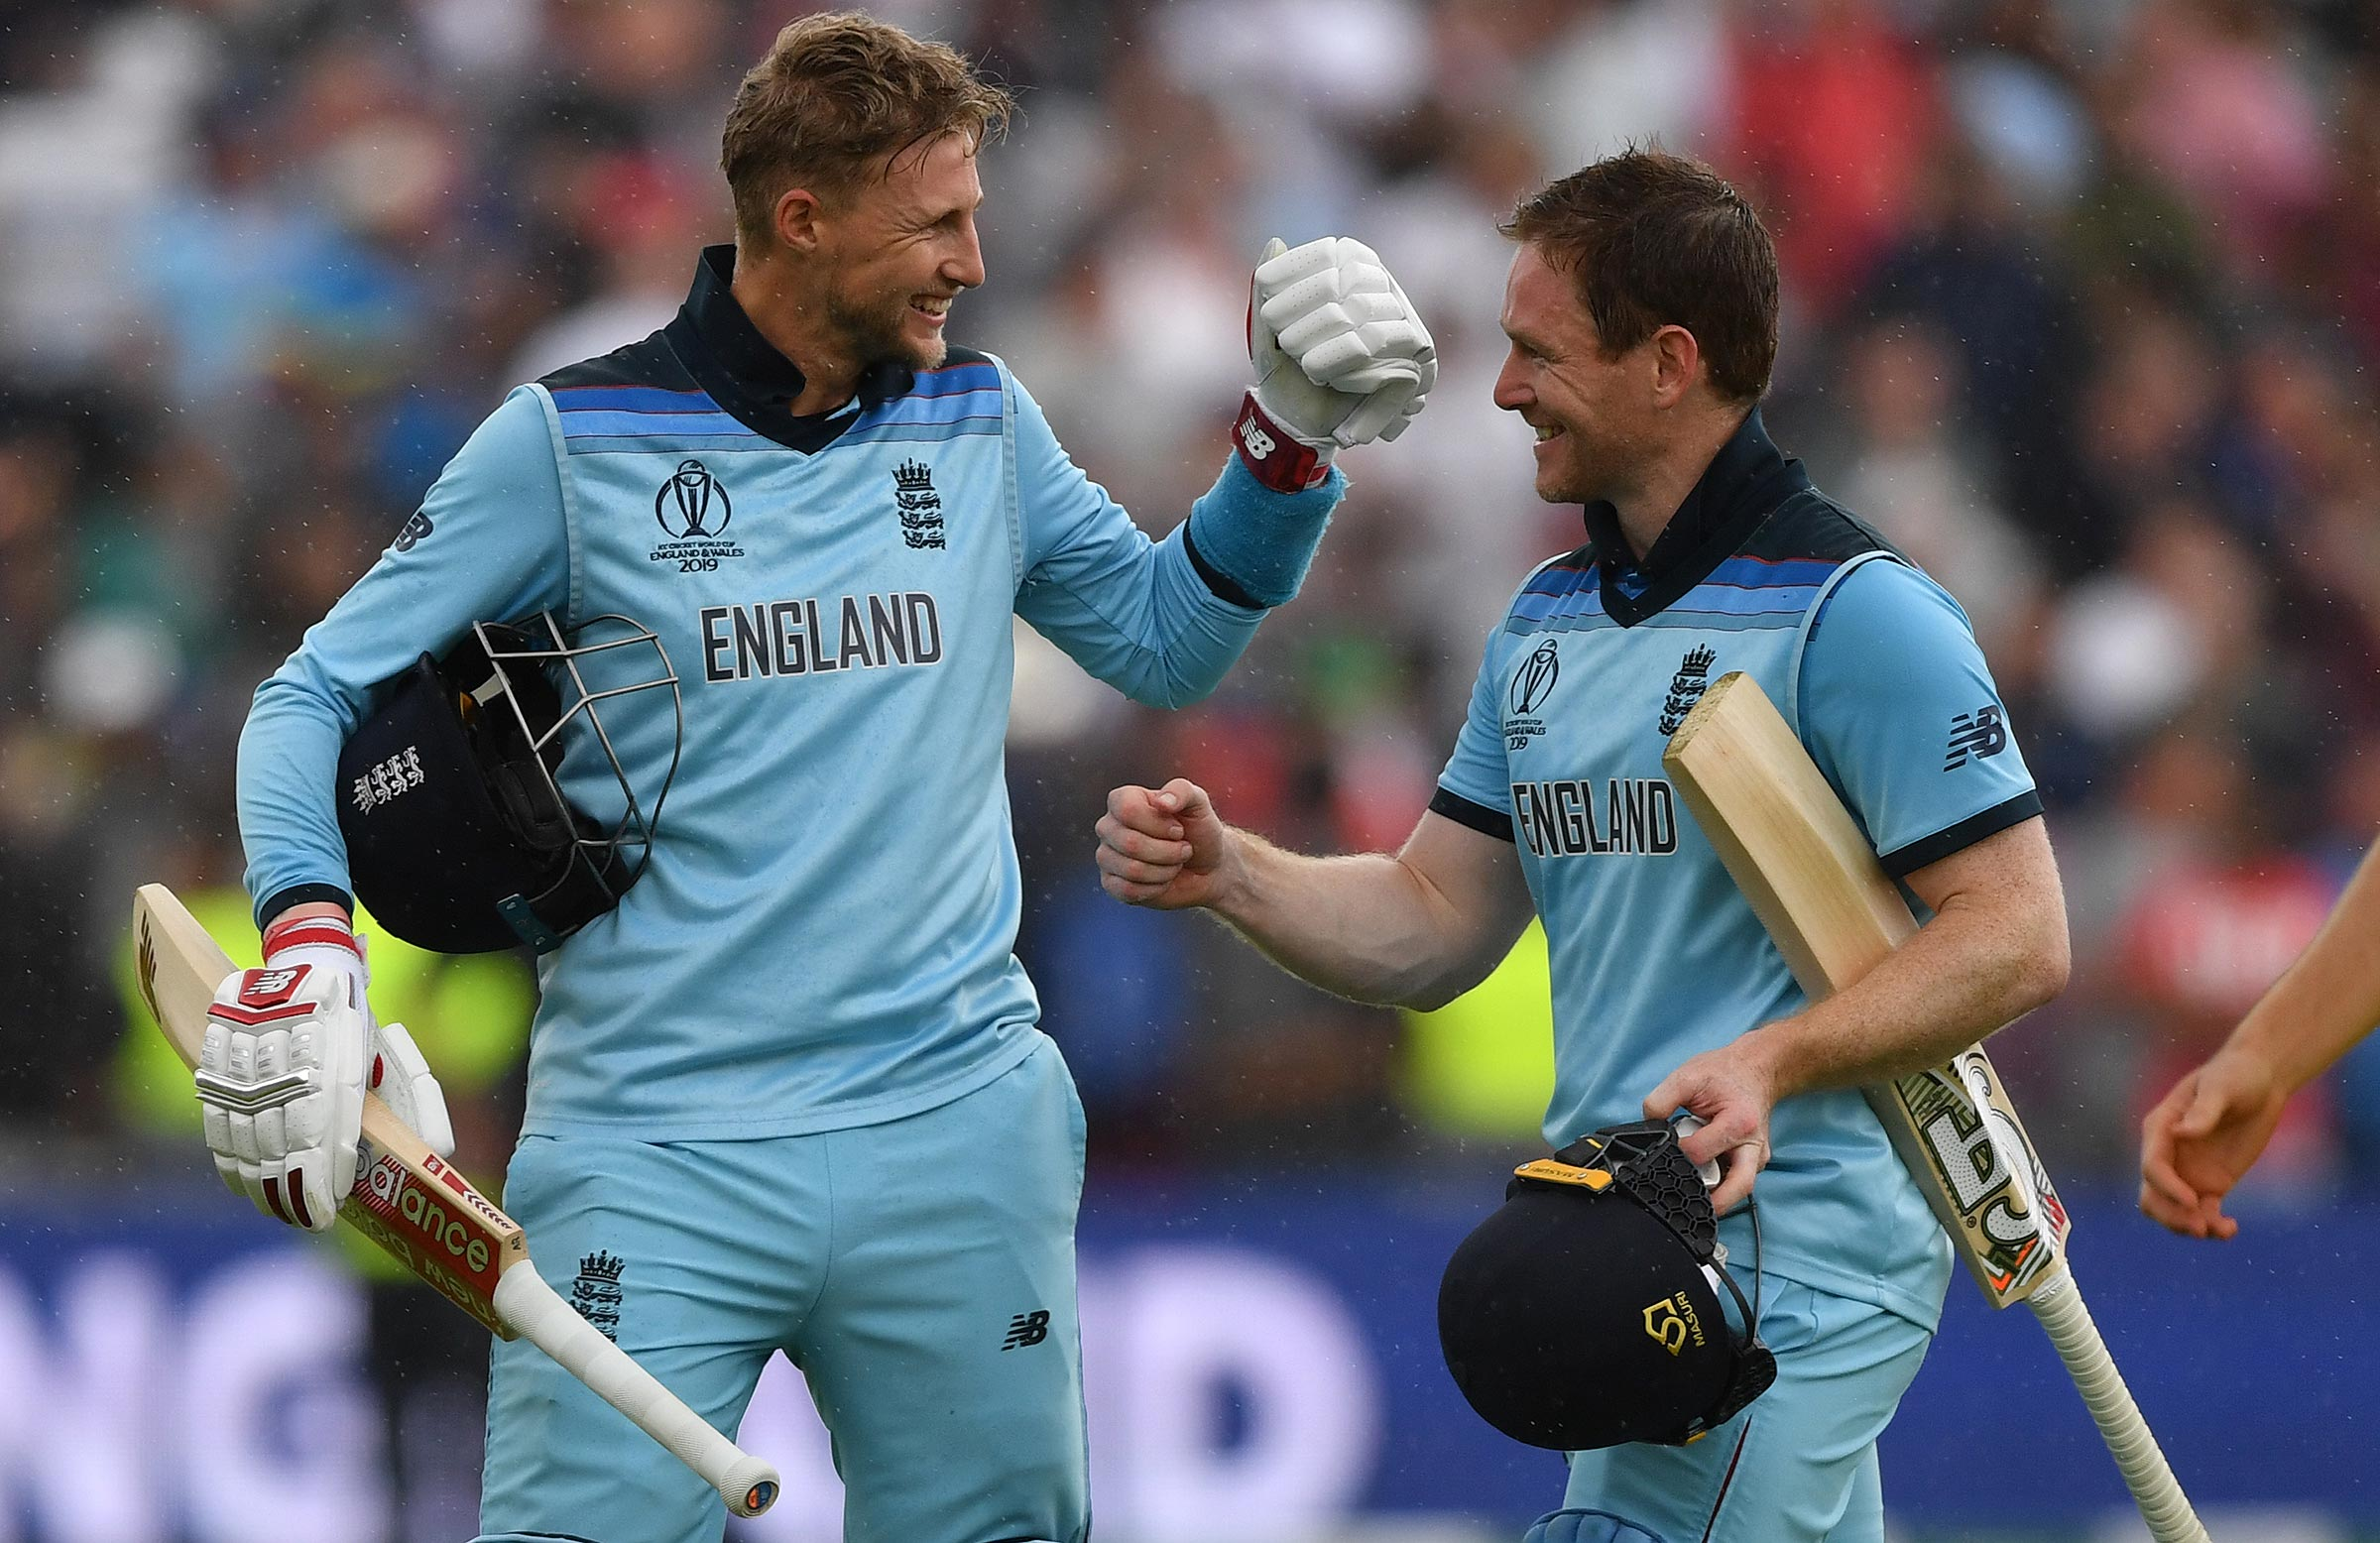 Four years in the making: England's date with destiny